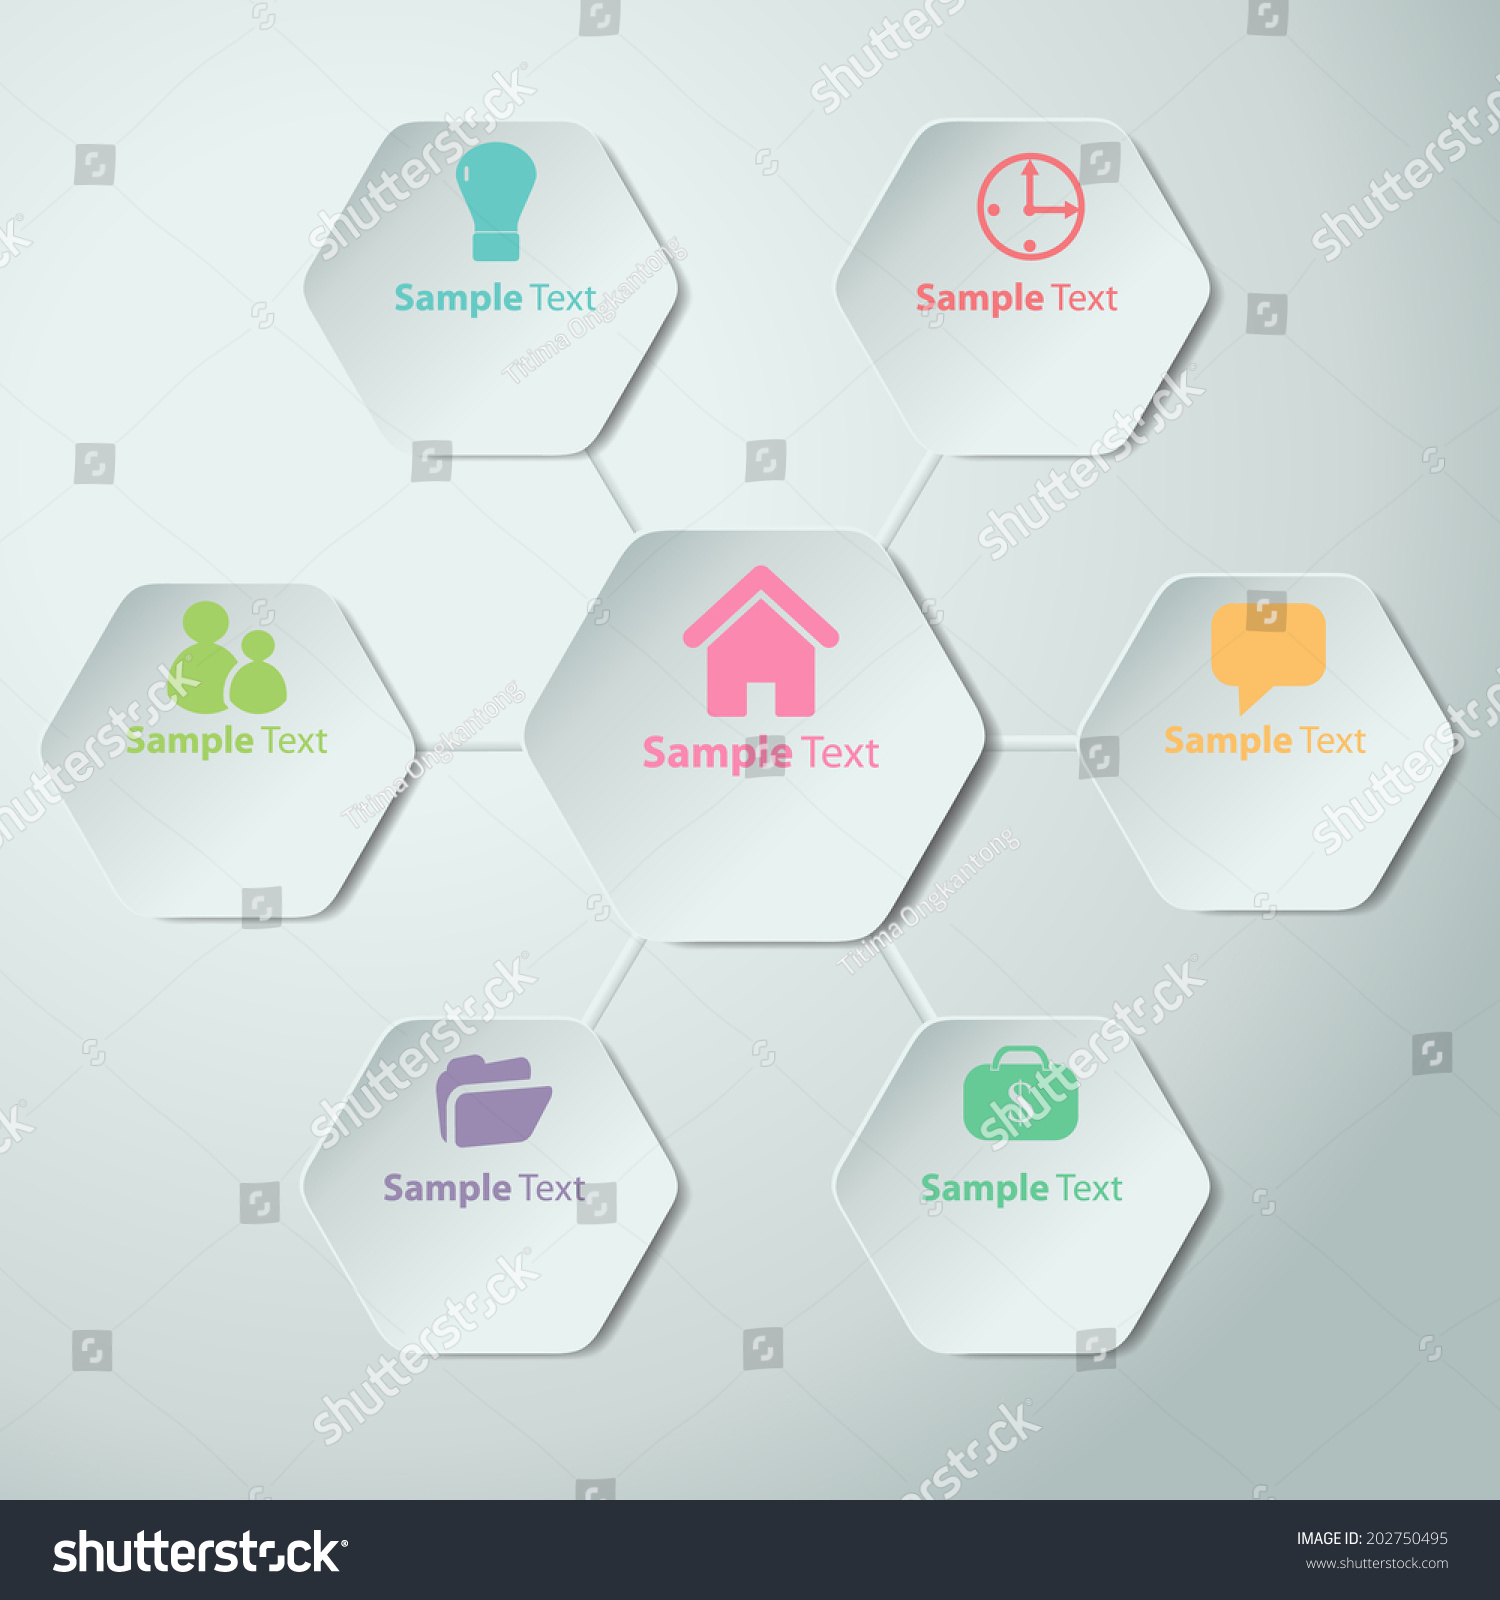 Colorful Polygons Cut Paper Design Template. Vector Illustration For Your  Business Presentation. Icon.  Paper Design Template